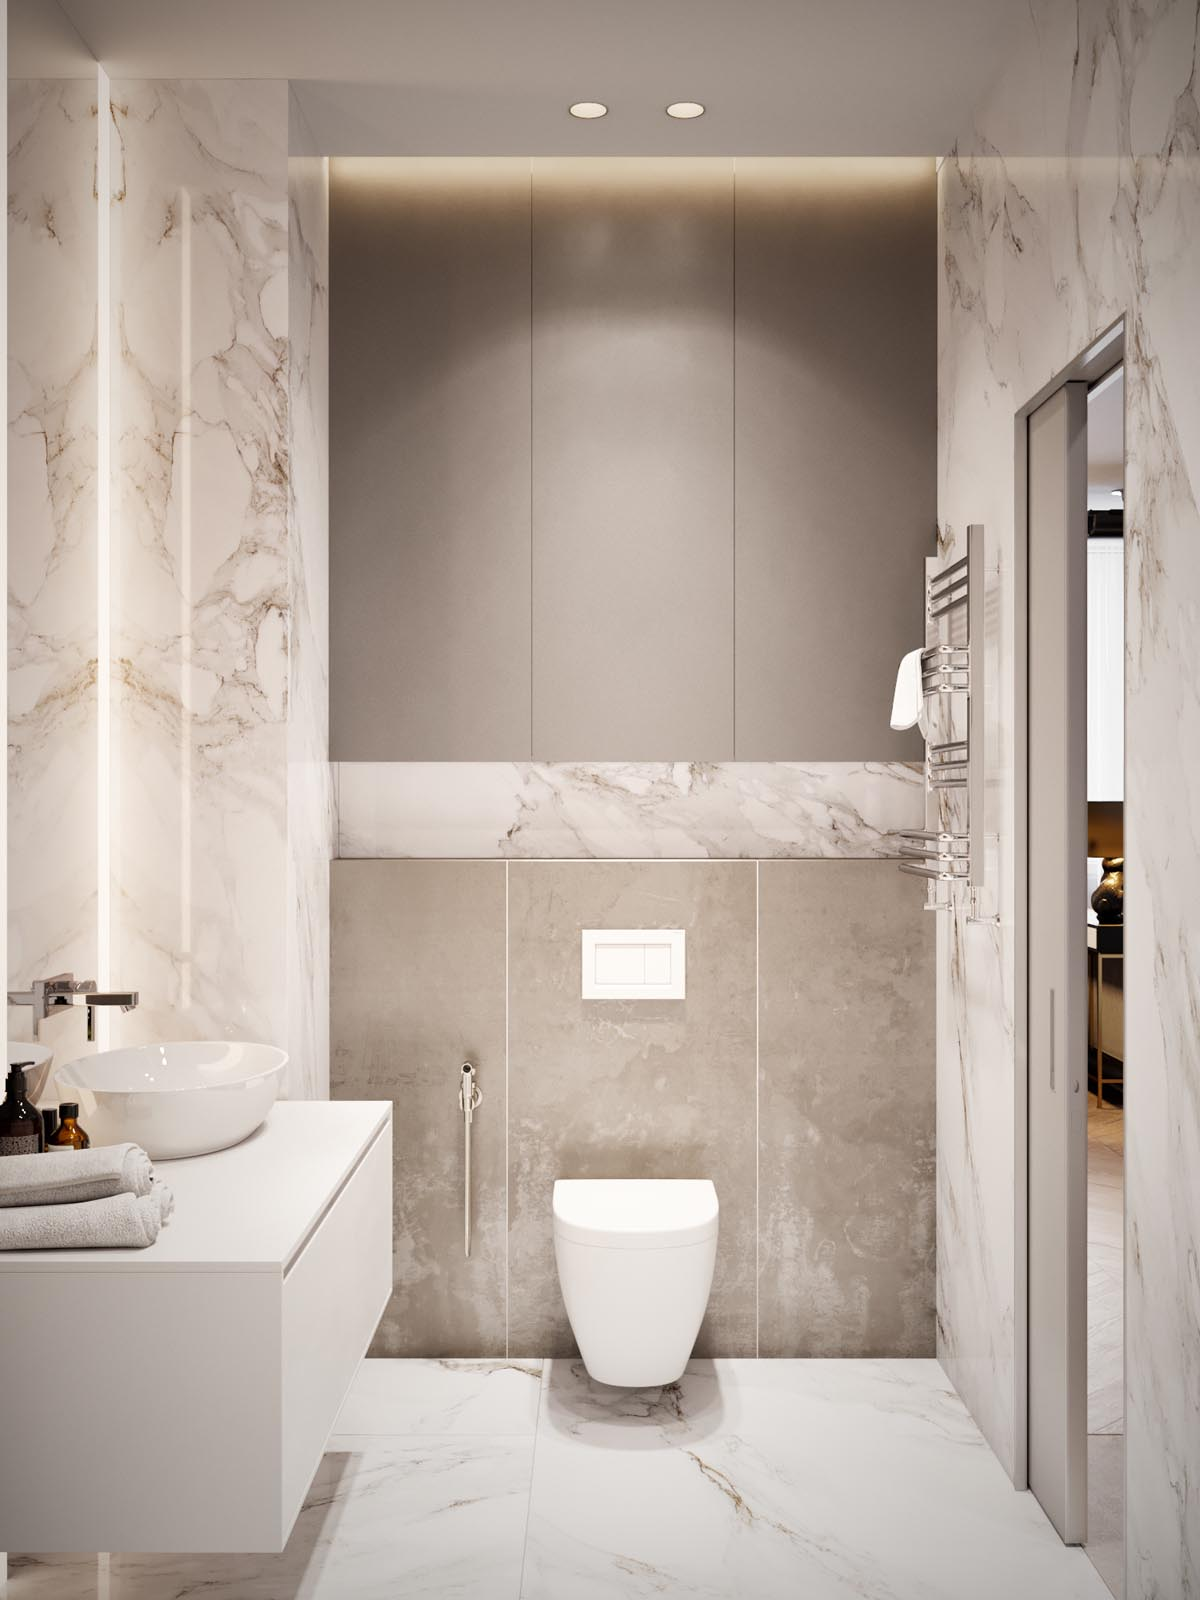 Home Design Under 60 Square Meters: 3 Examples That ... on Nice Bathroom Designs For Small Spaces  id=94292